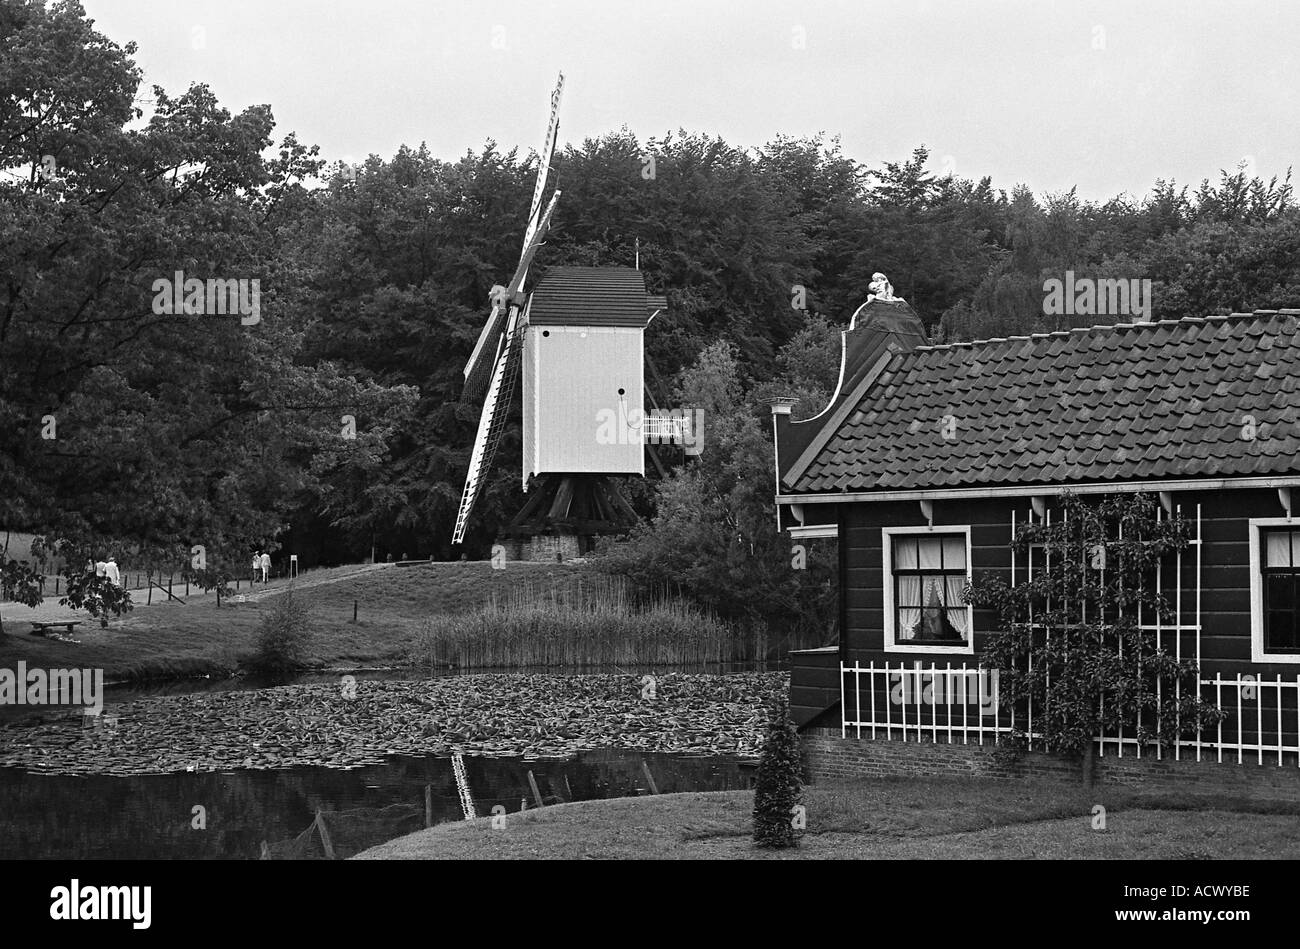 Post mill and farm house in open air folk museum in Holland - Stock Image